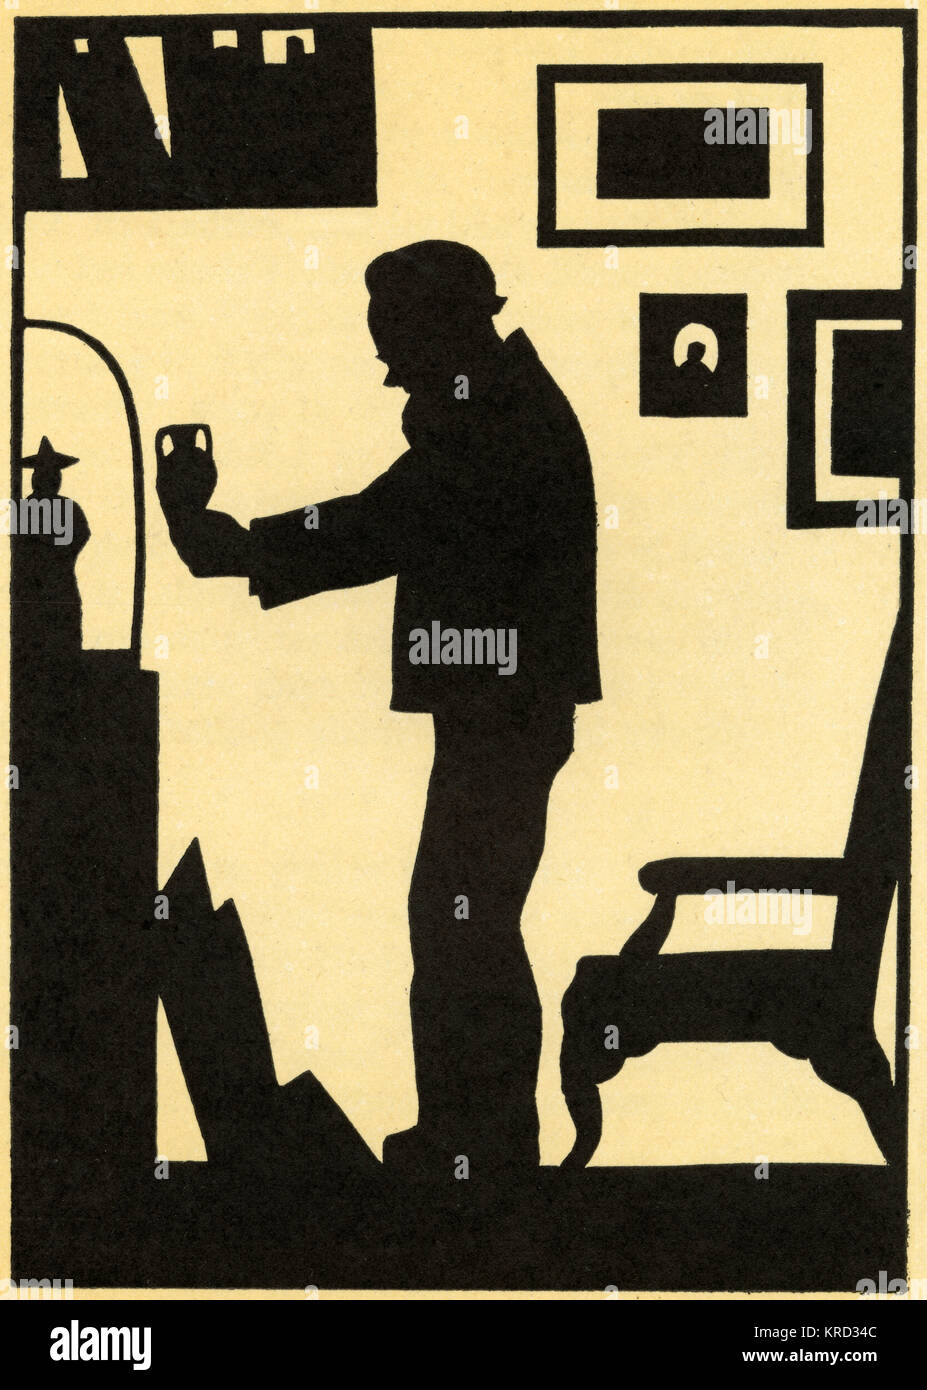 An antique shop owner, admiring a small vase, pictured in silhouette.     Date: 1926 - Stock Image